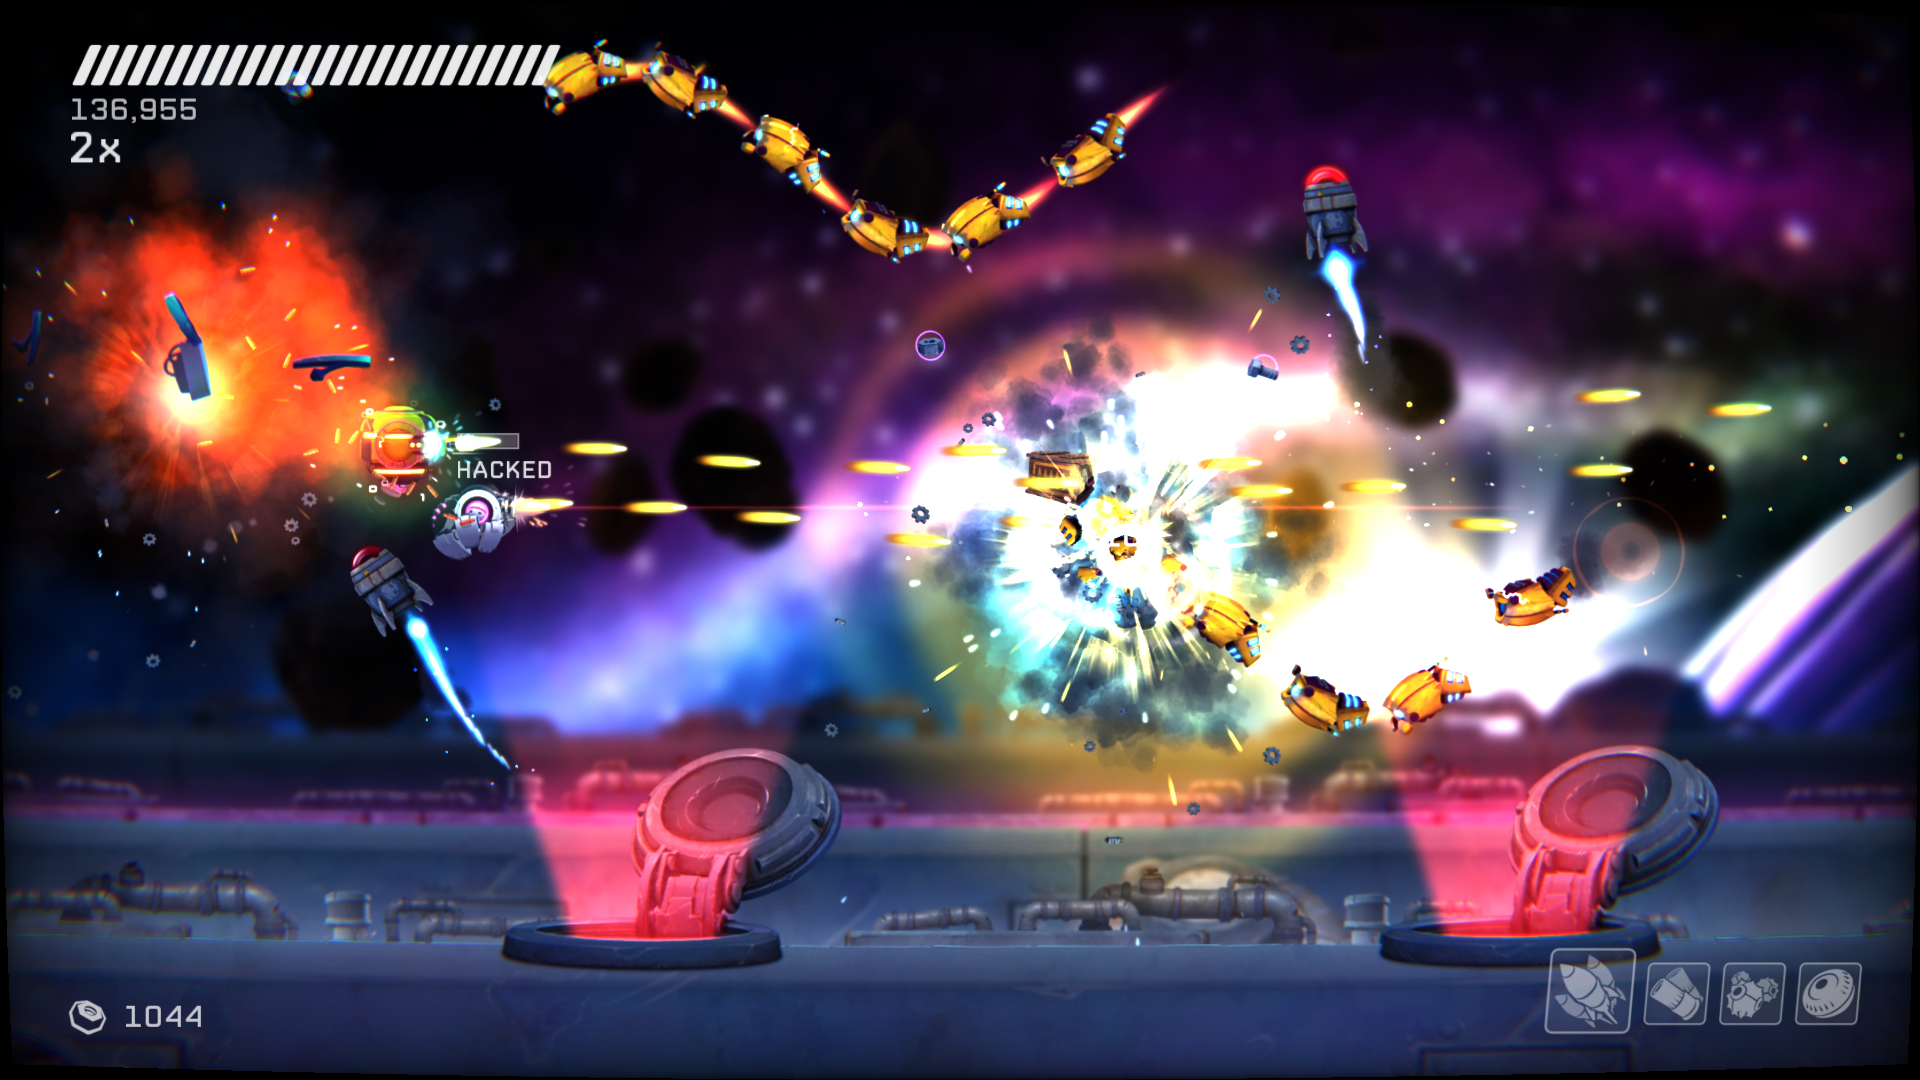 rive-review-screenshot-2